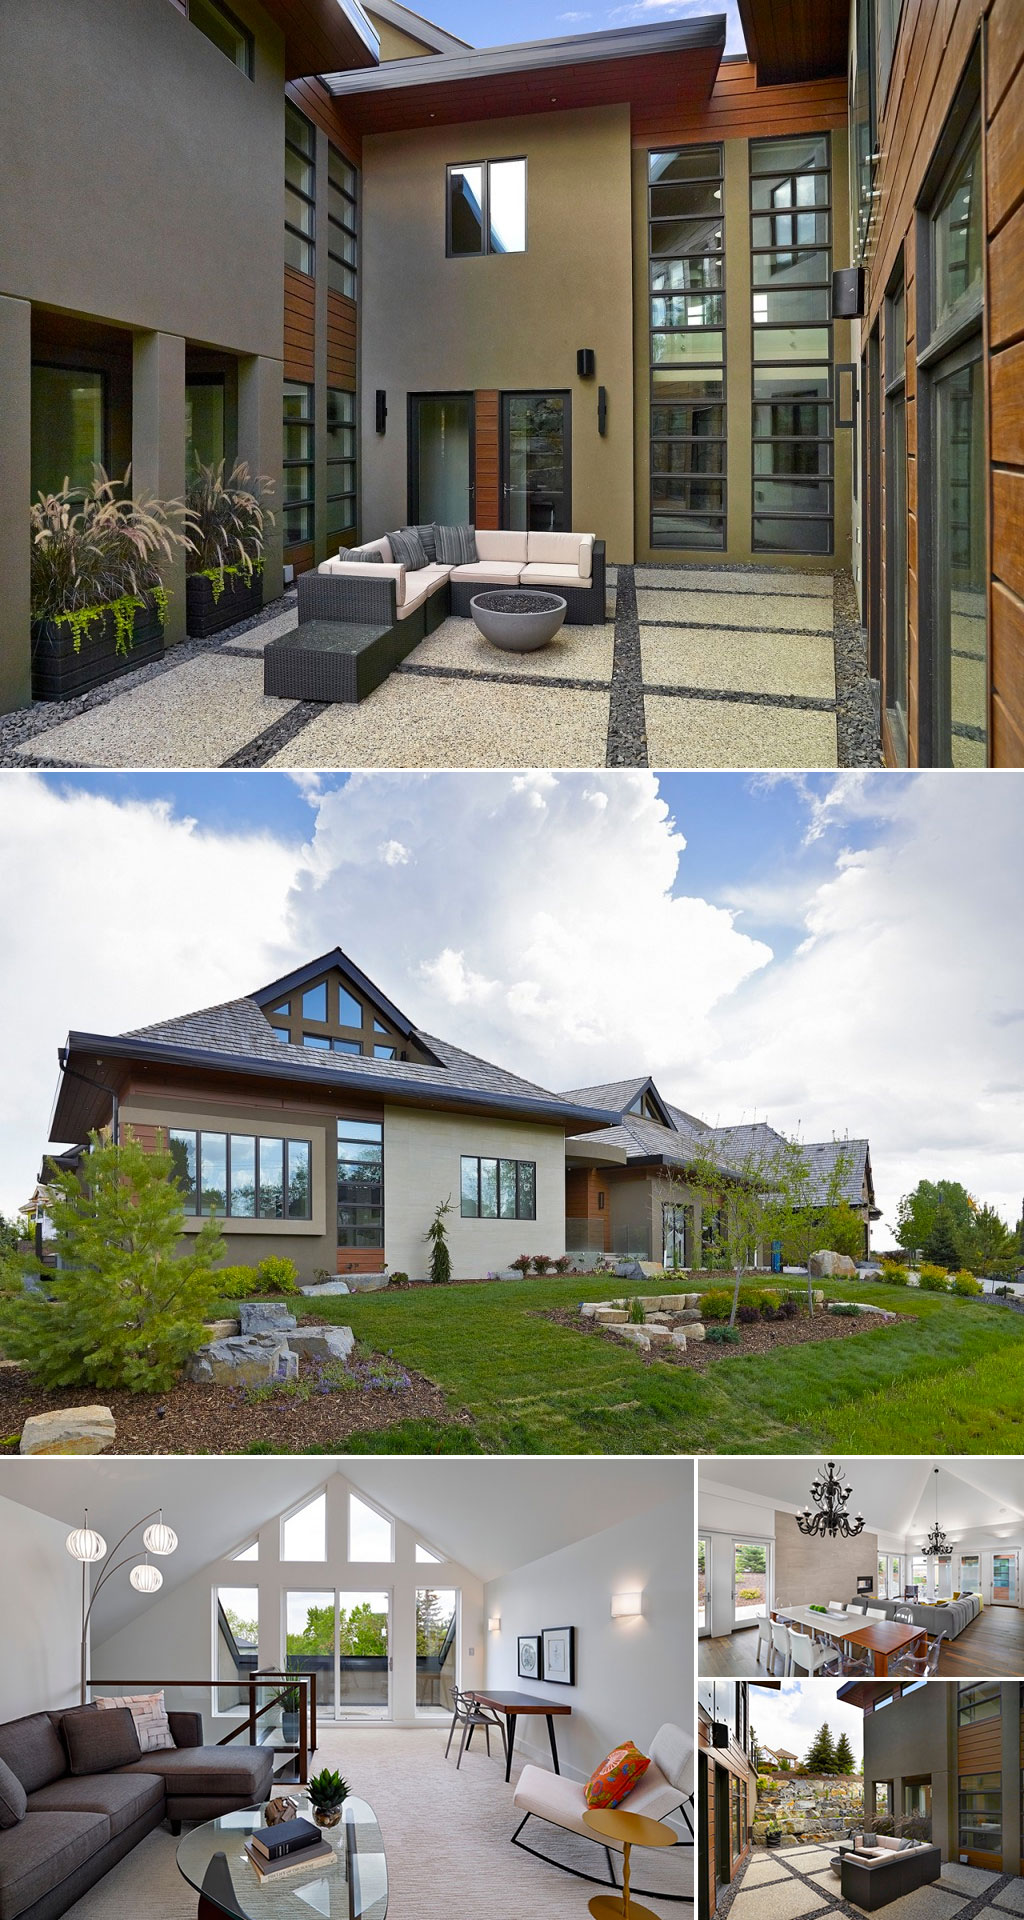 Designed by E3 Architecture and builder Birkholz Homes